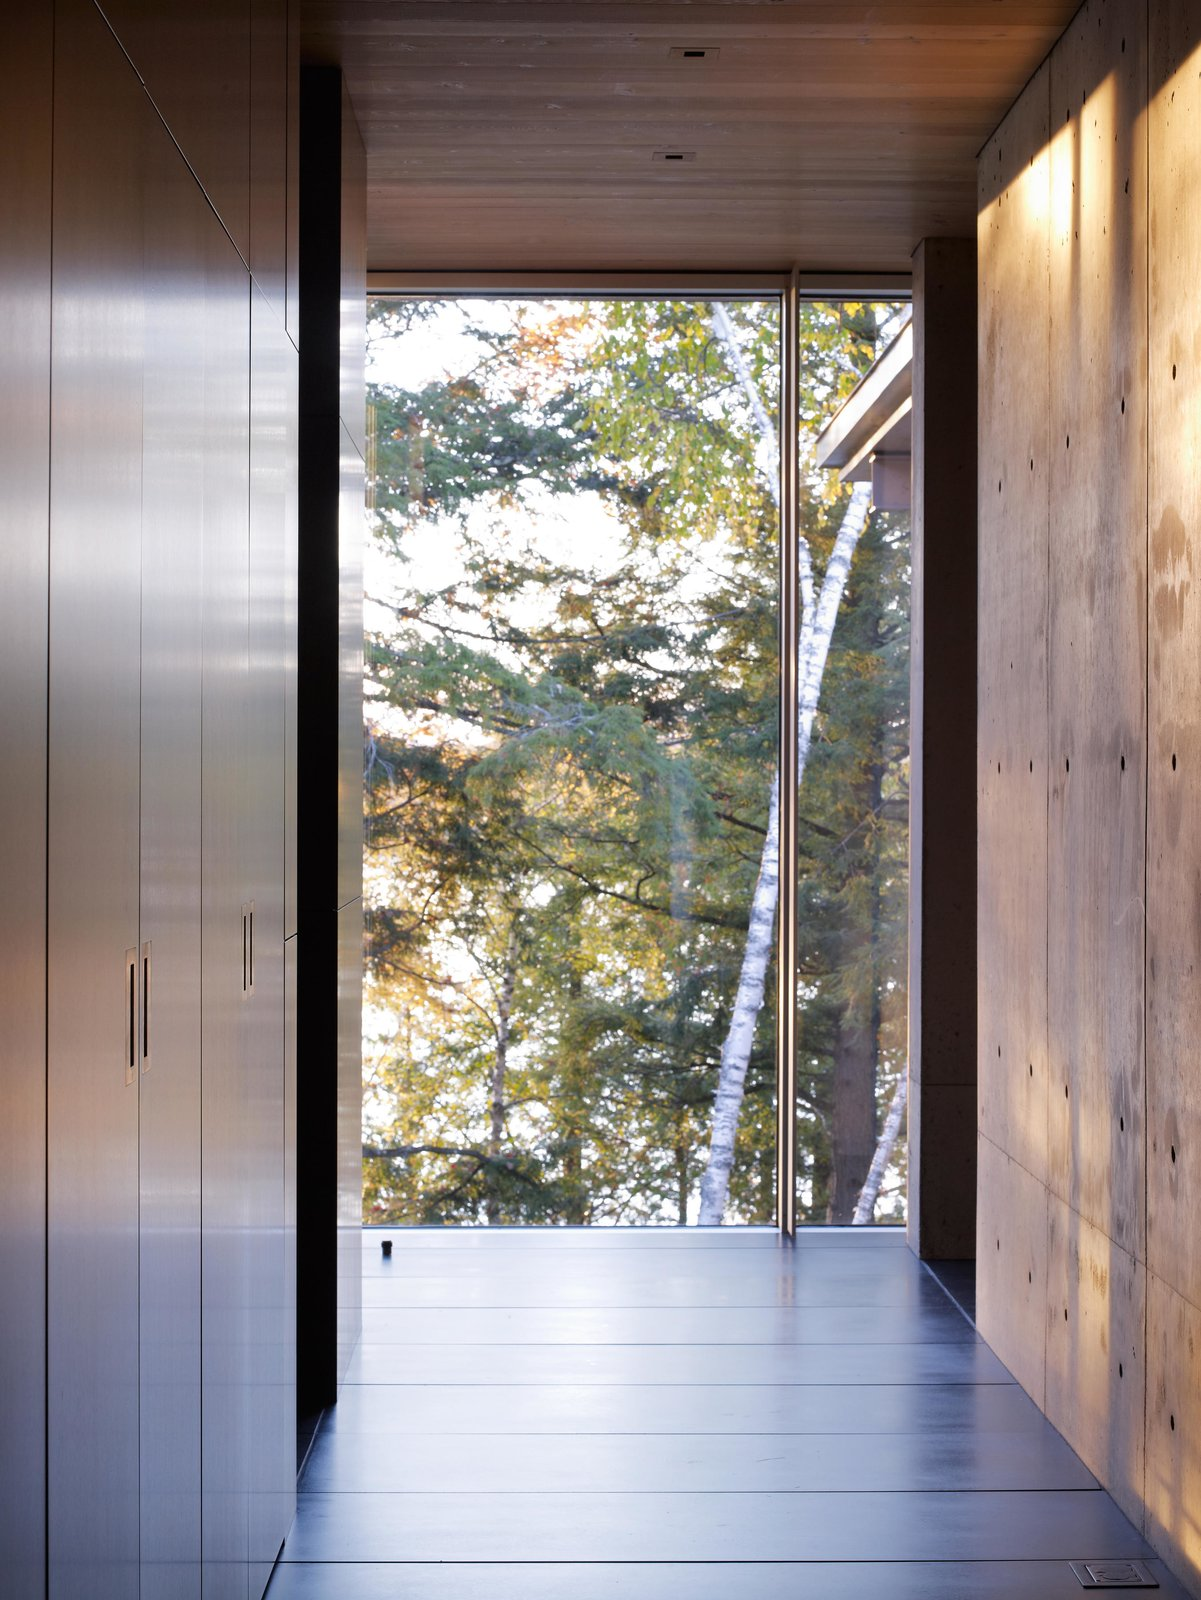 Exterior, Wood, Metal, Garden, Coffee Tables, Table, Storage Room, and Chair Northwoods House  Northwoods House by Olson Kundig